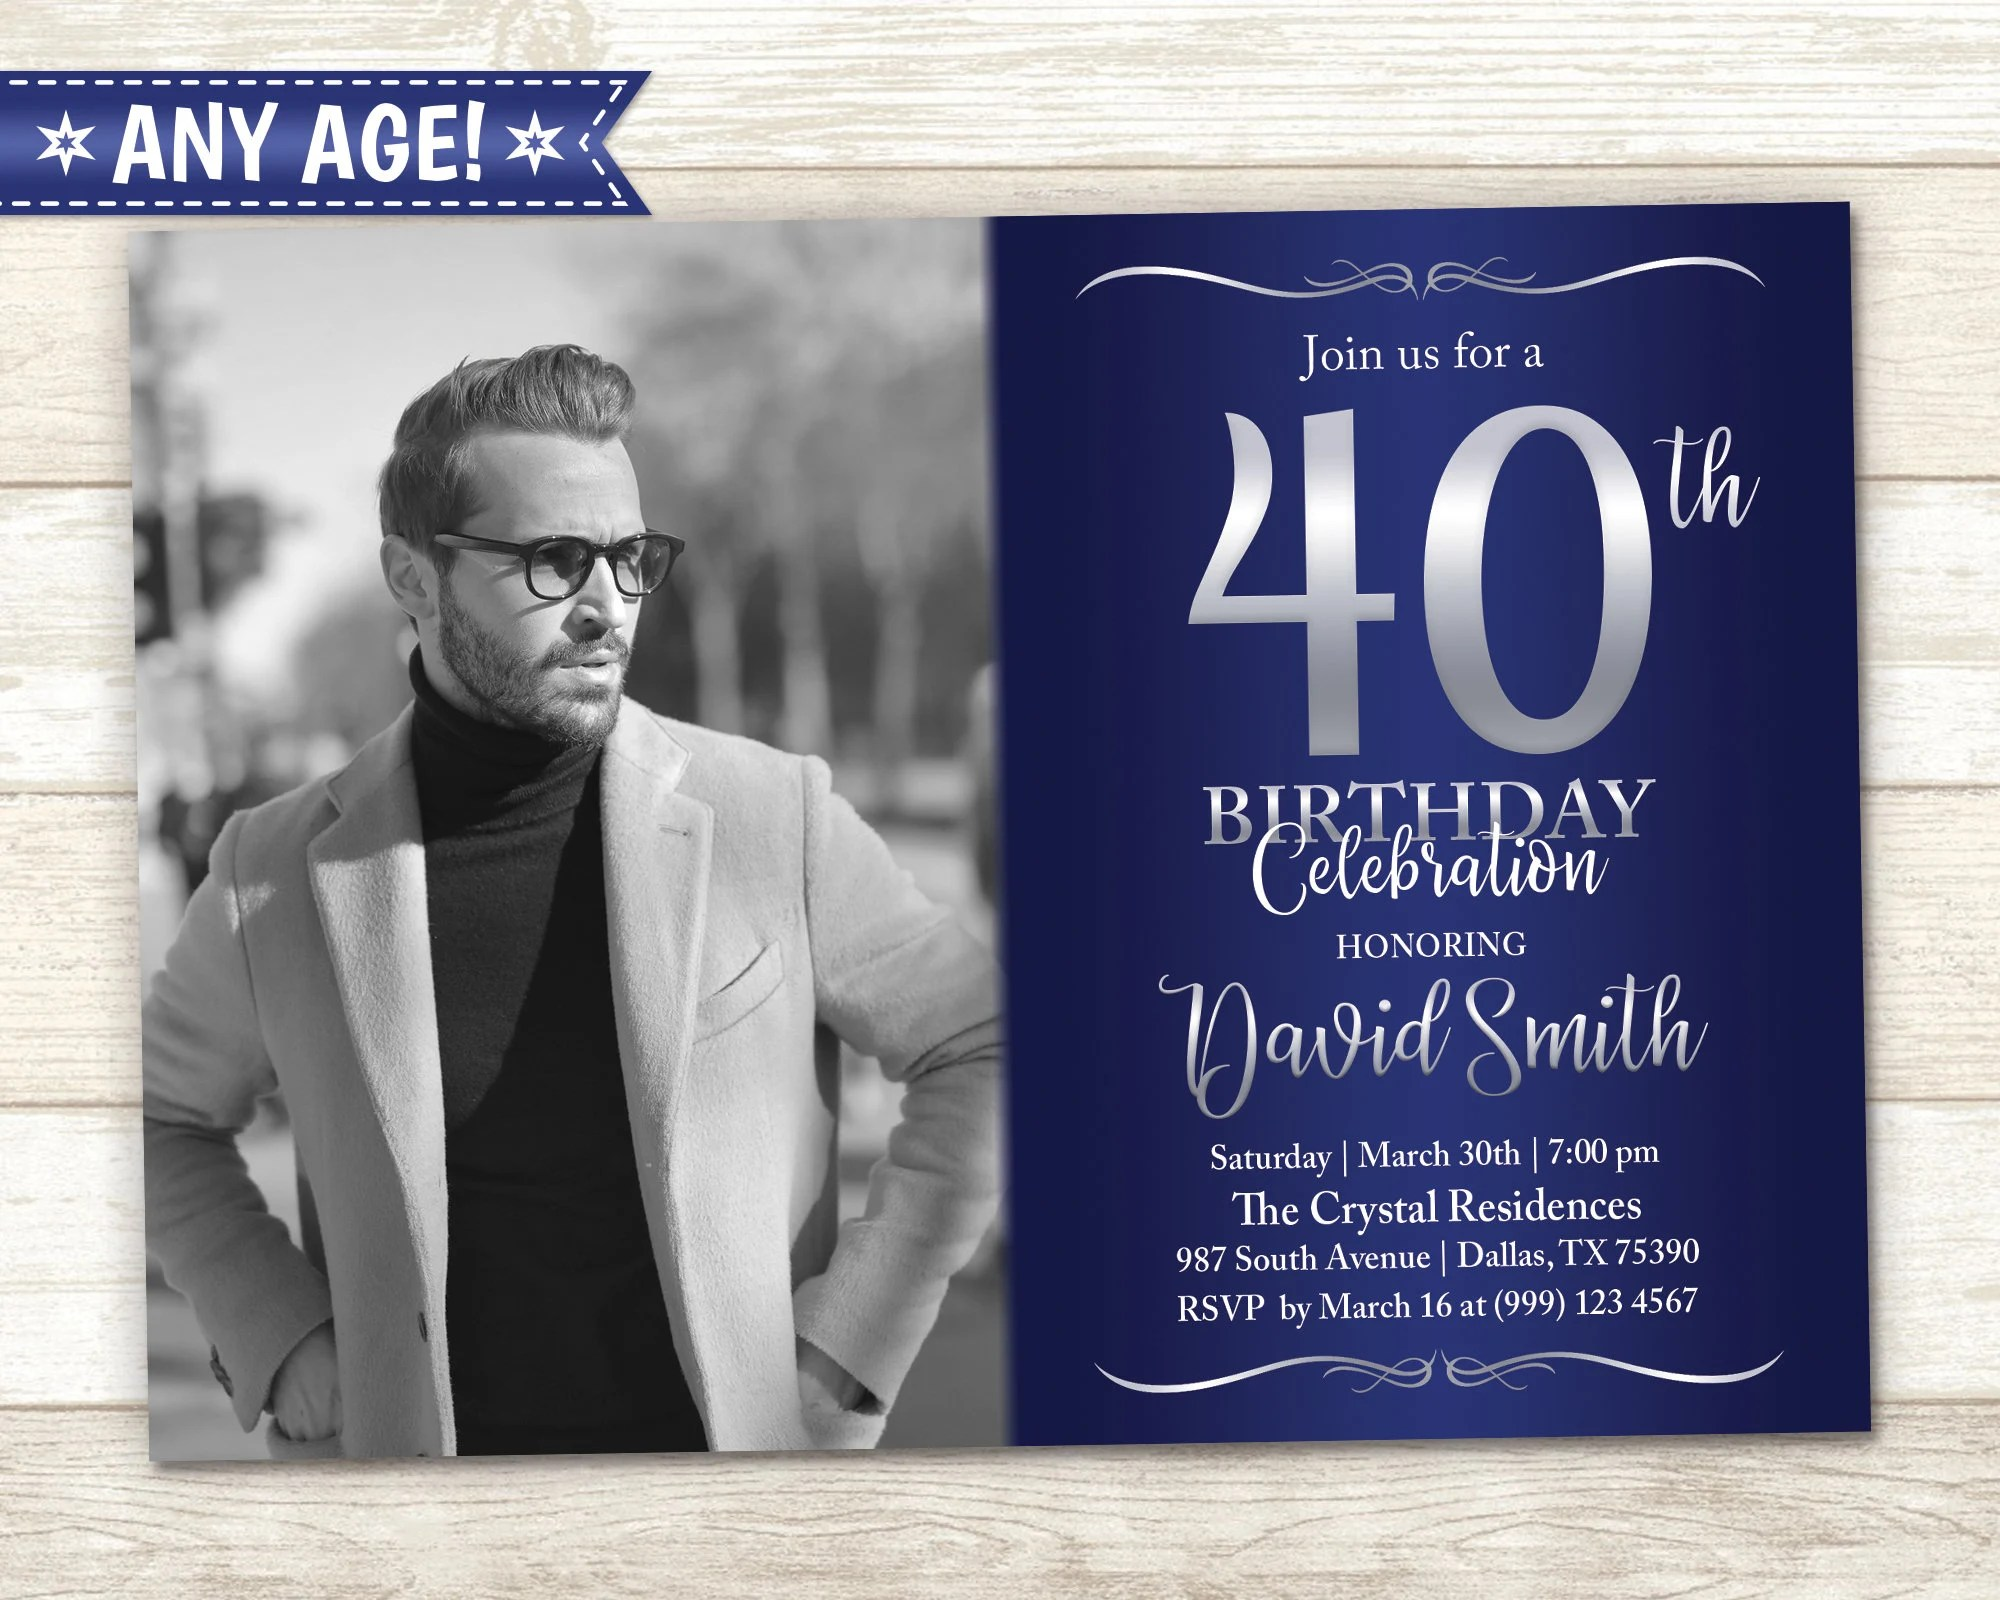 adult birthday invitation 40th birthday party 50th birthday invitation elegant birthday invitation blue silver white for any age